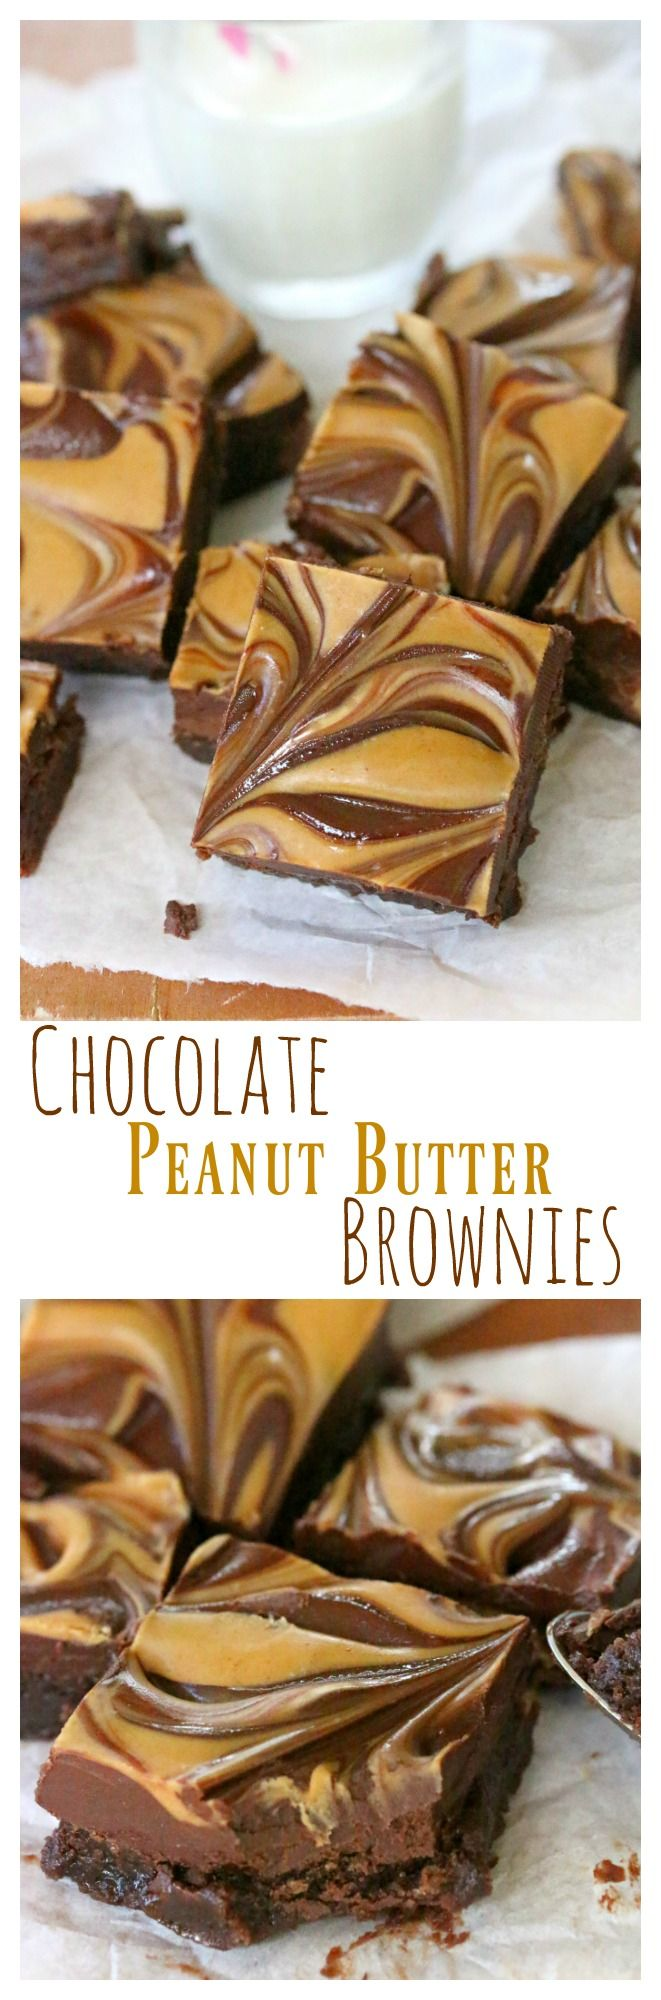 Chocolate Peanut Butter Brownies: Savory swirls of peanut butter and chocolate over brownies loaded with with chunks of peanut butter cups. #Brownies #PeanutButter